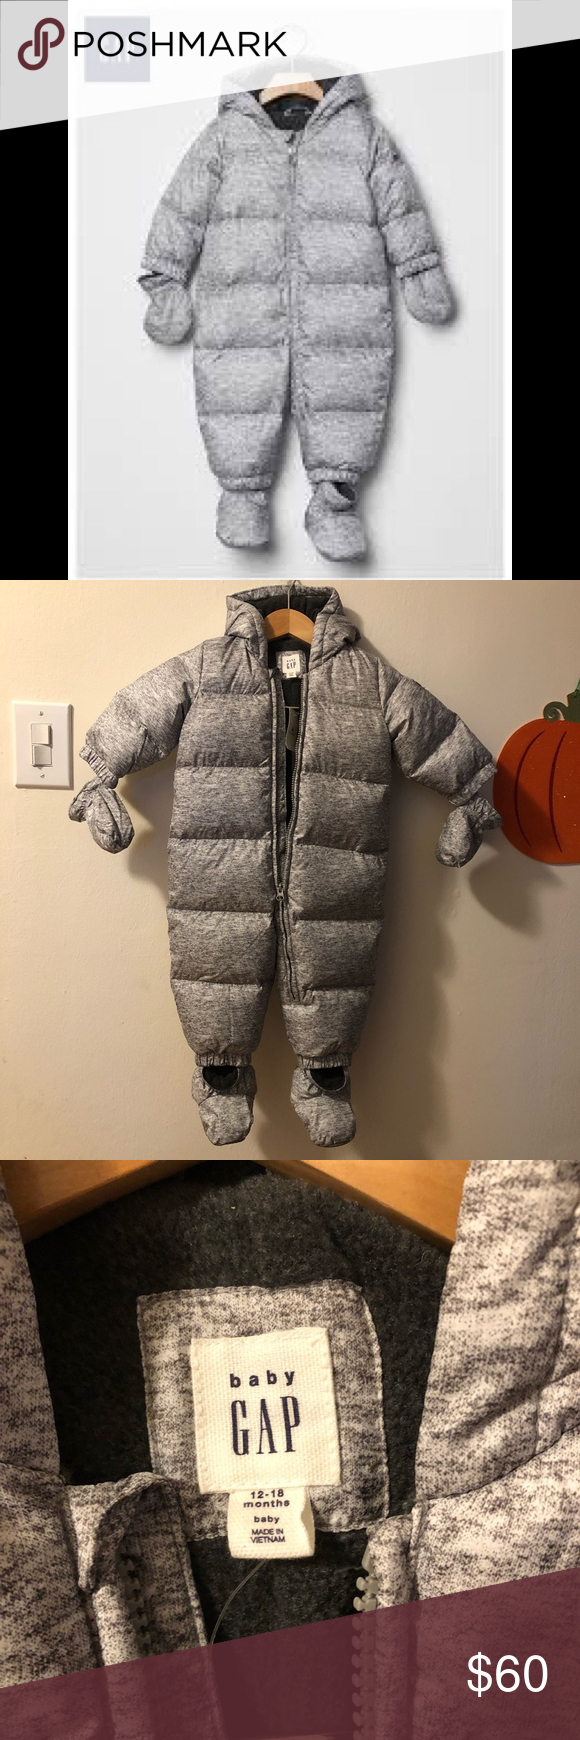 c29655066 Baby Gap Warmest Down Heather Gray Snowsuit NWT in 2018